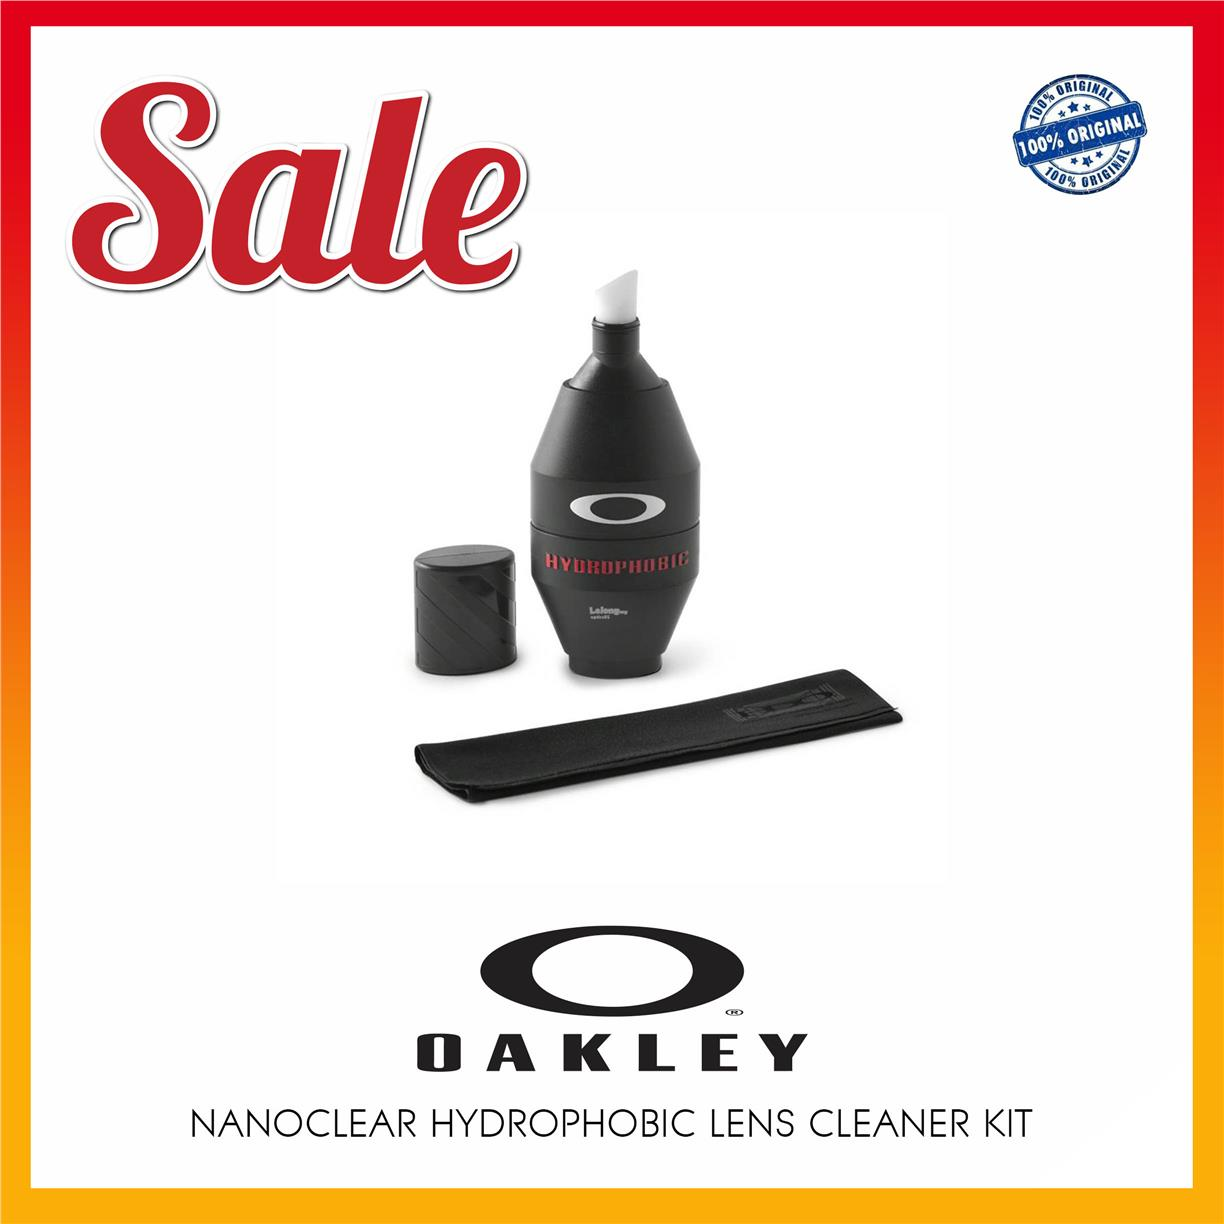 Oakley Nanoclear Hydrophobic Lens Cleaner Kit / Clean Glasses